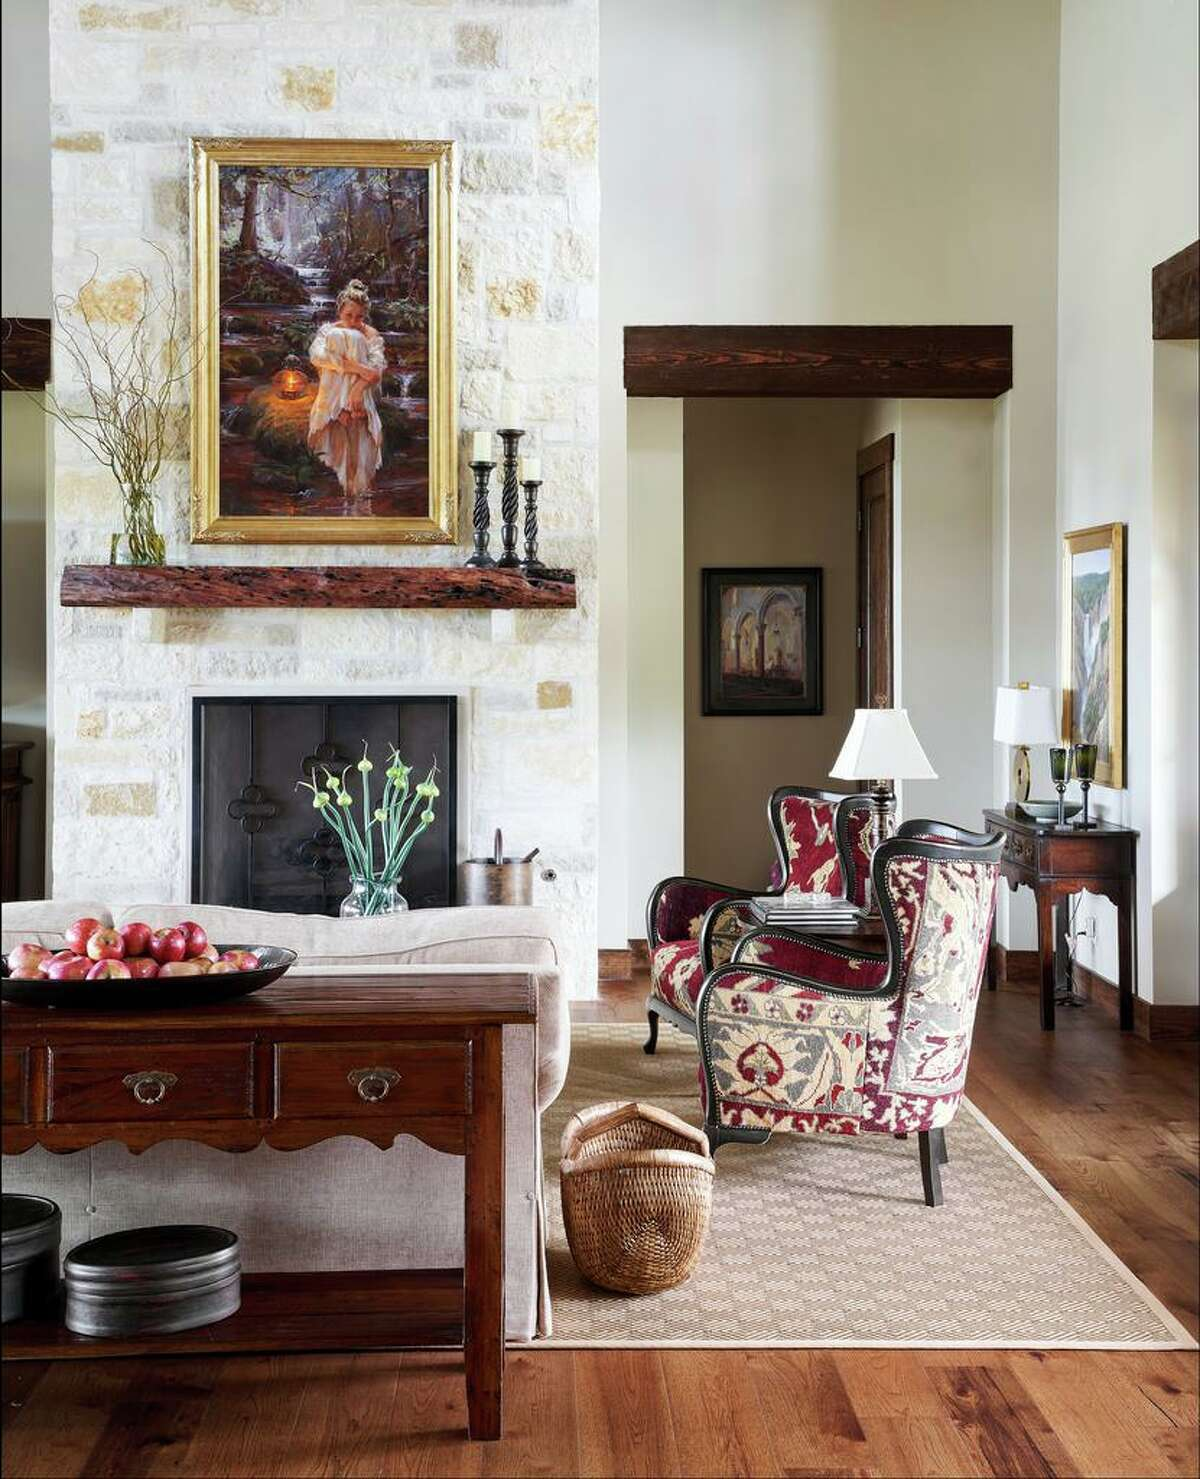 They reupholstered furniture that had been in their Santa Fe home from pieces that worked in an adobe style vacation home to Hill Country casual elegance.